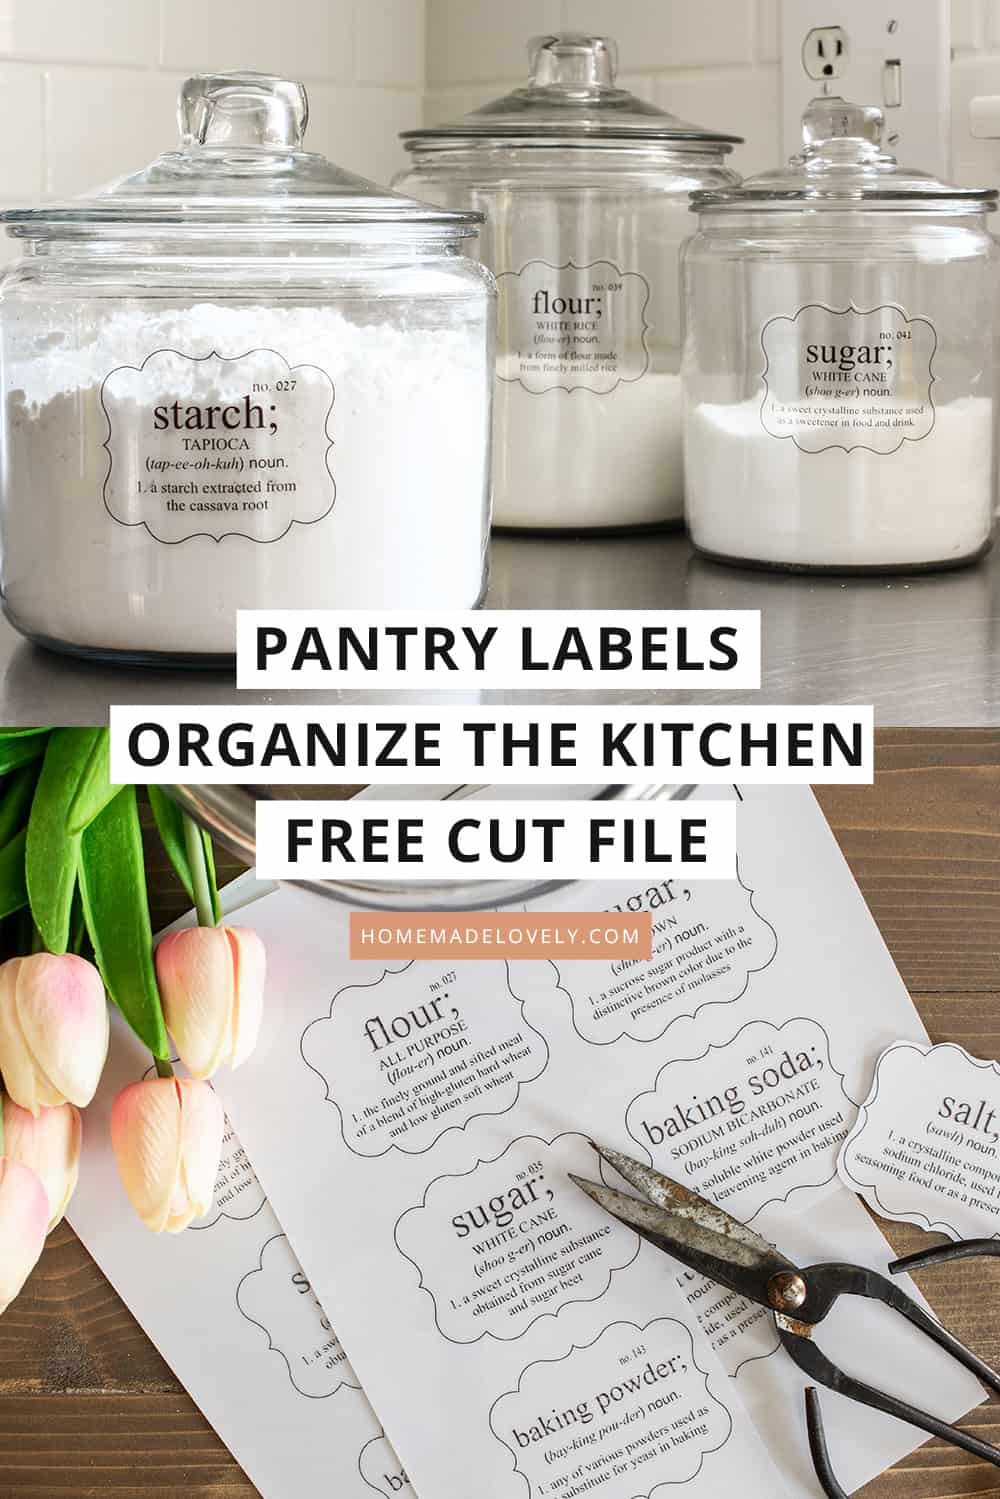 printed pantry labels and jars with labels on them